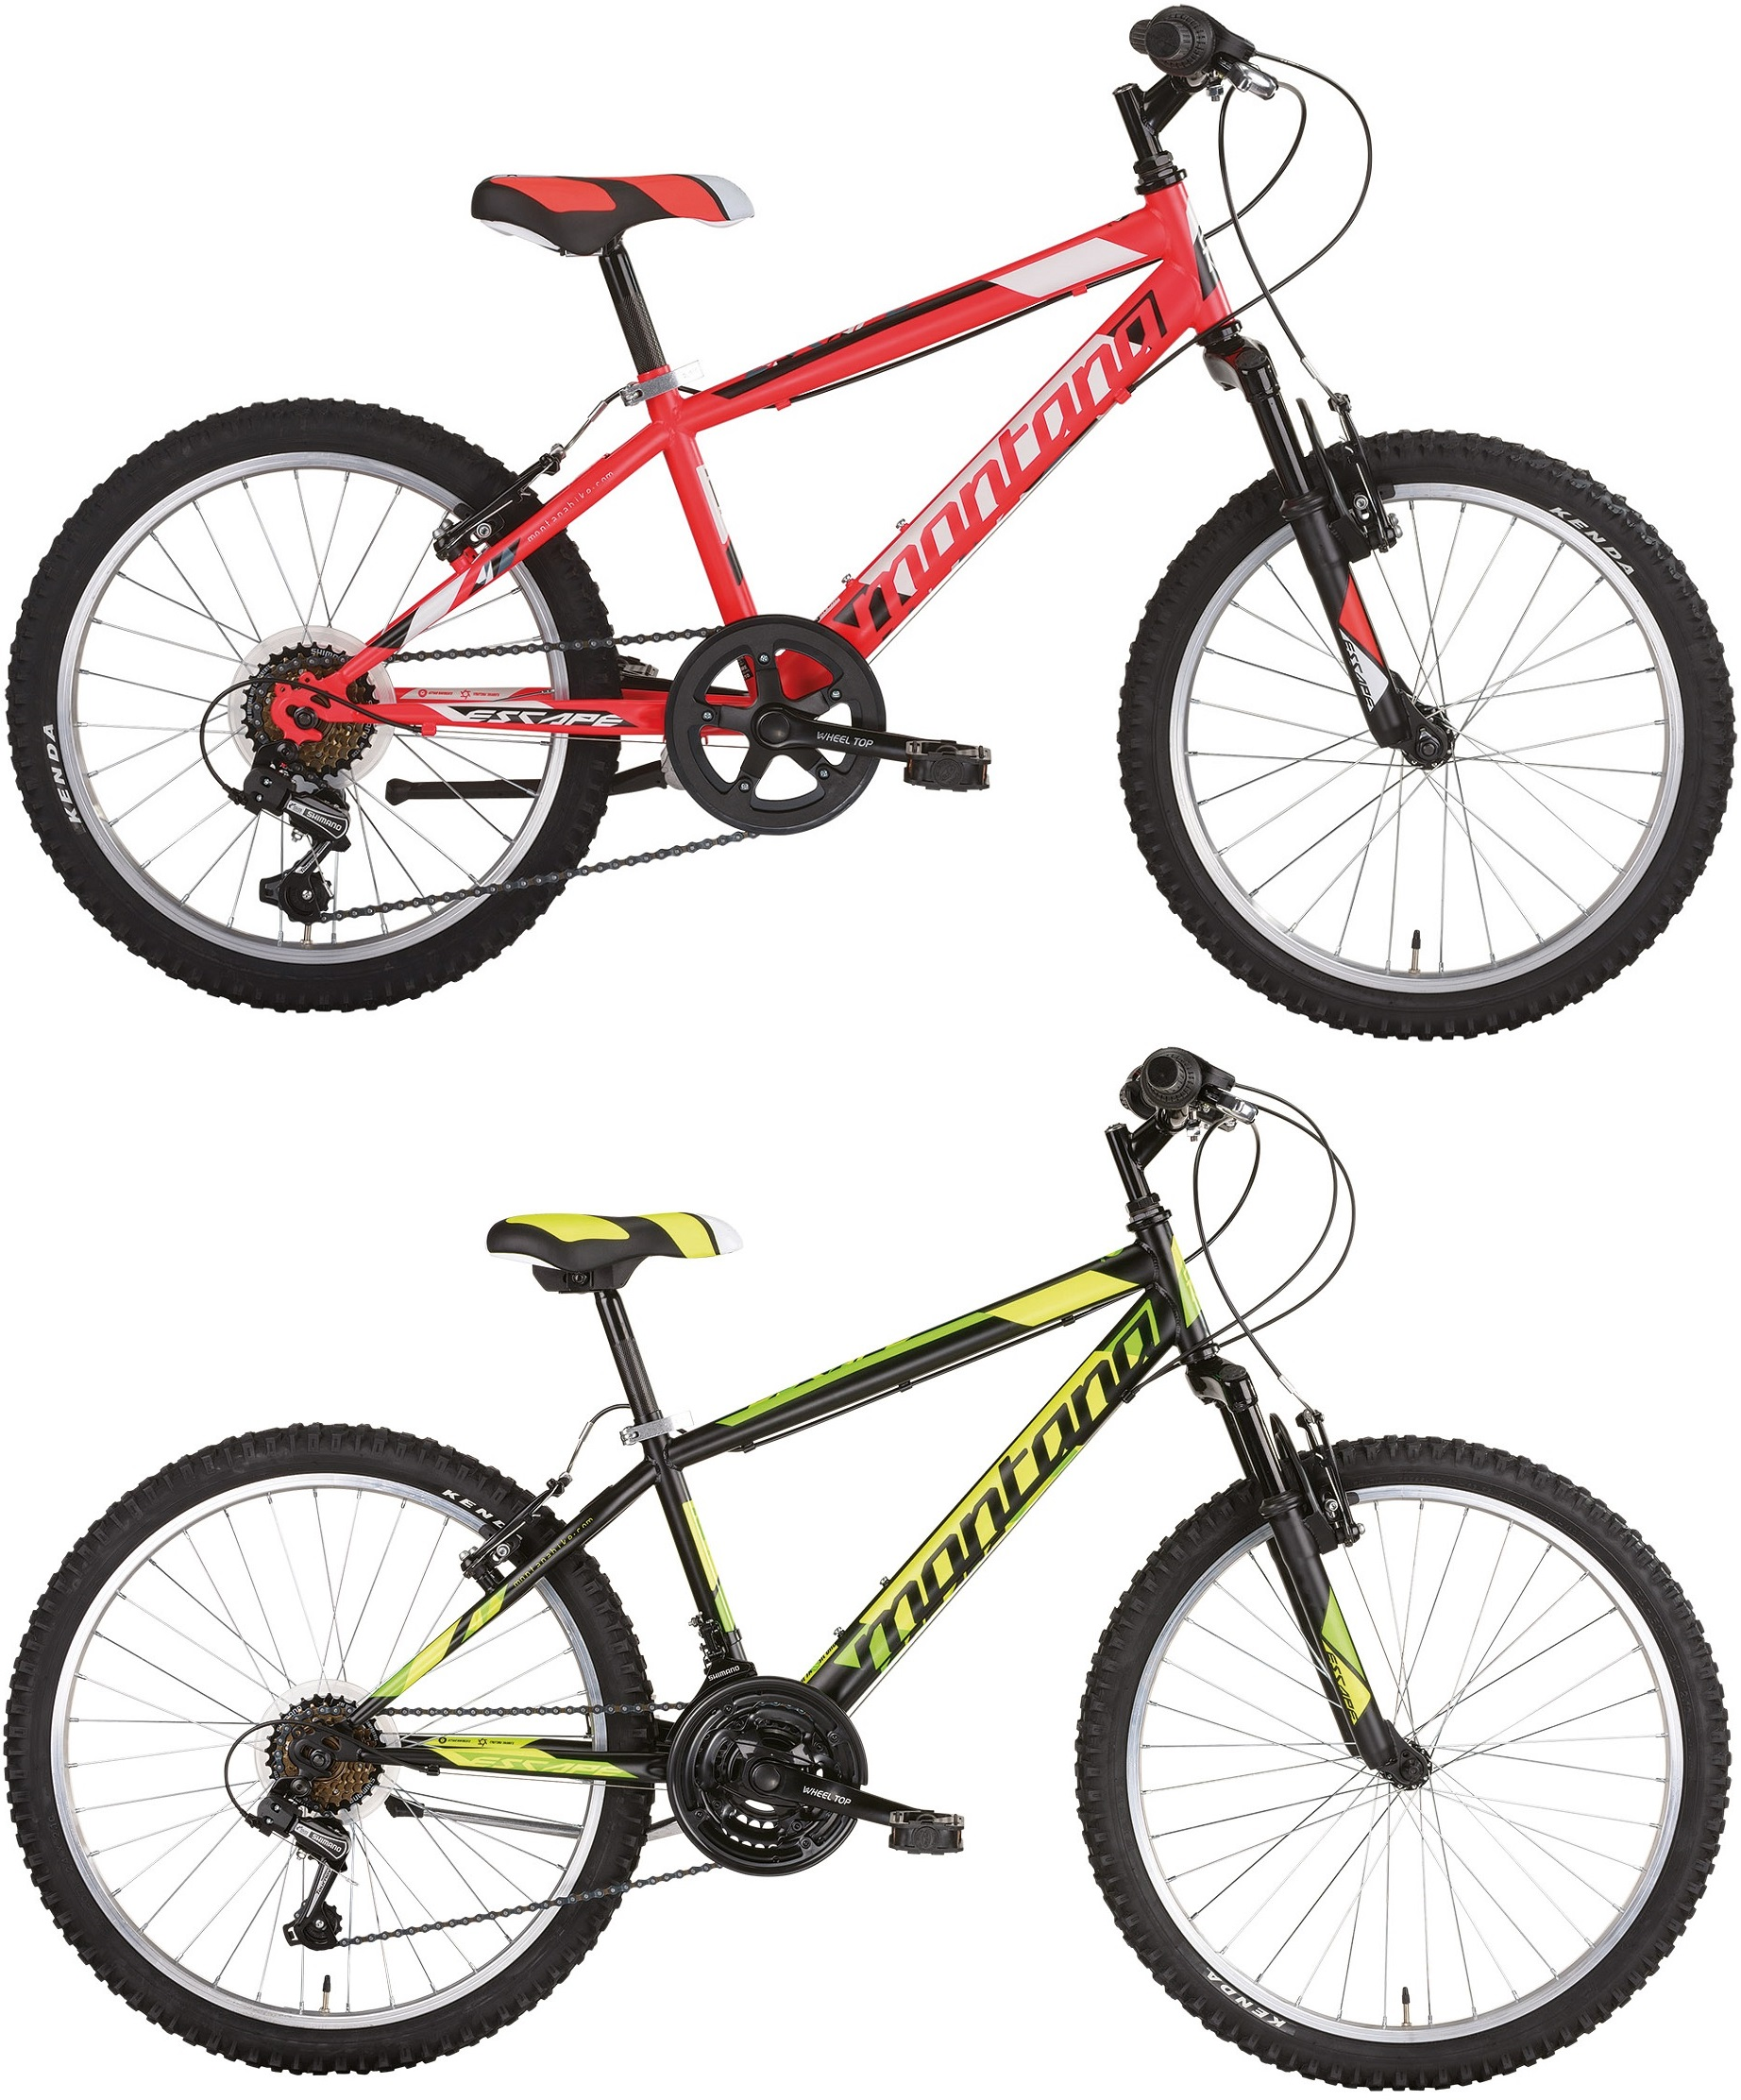 20 zoll mountainbike montana escape 6 gang starrgabel. Black Bedroom Furniture Sets. Home Design Ideas